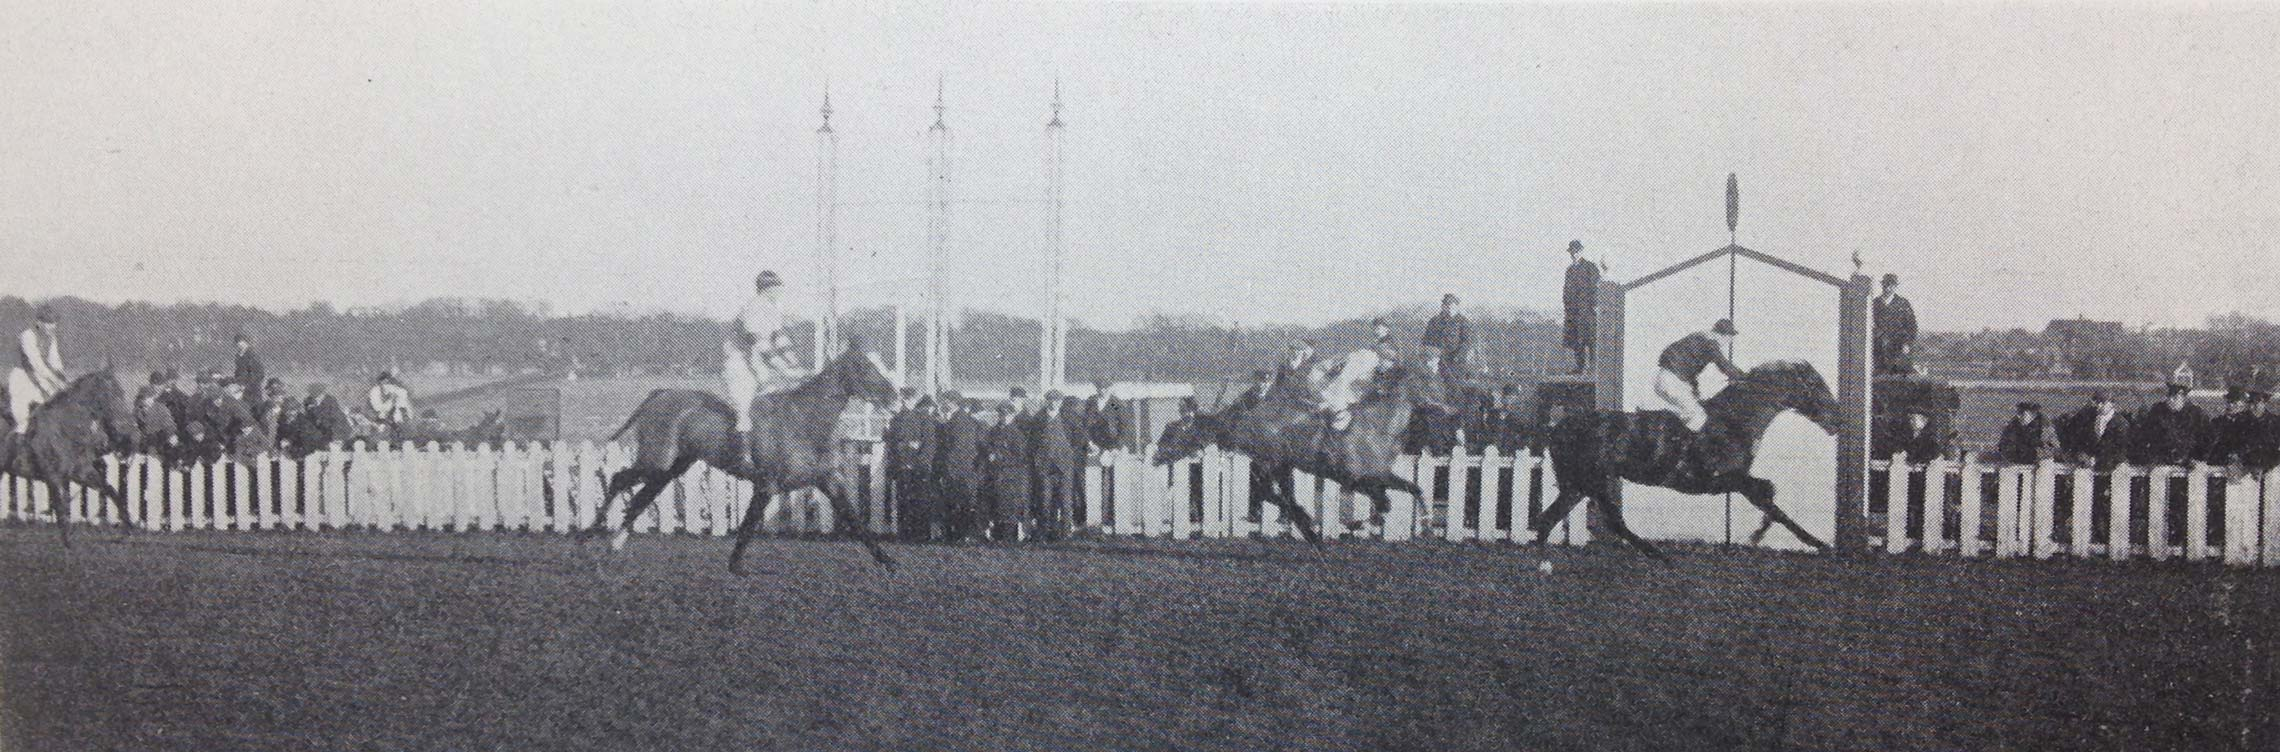 Horse racing to be curtailed in 1917